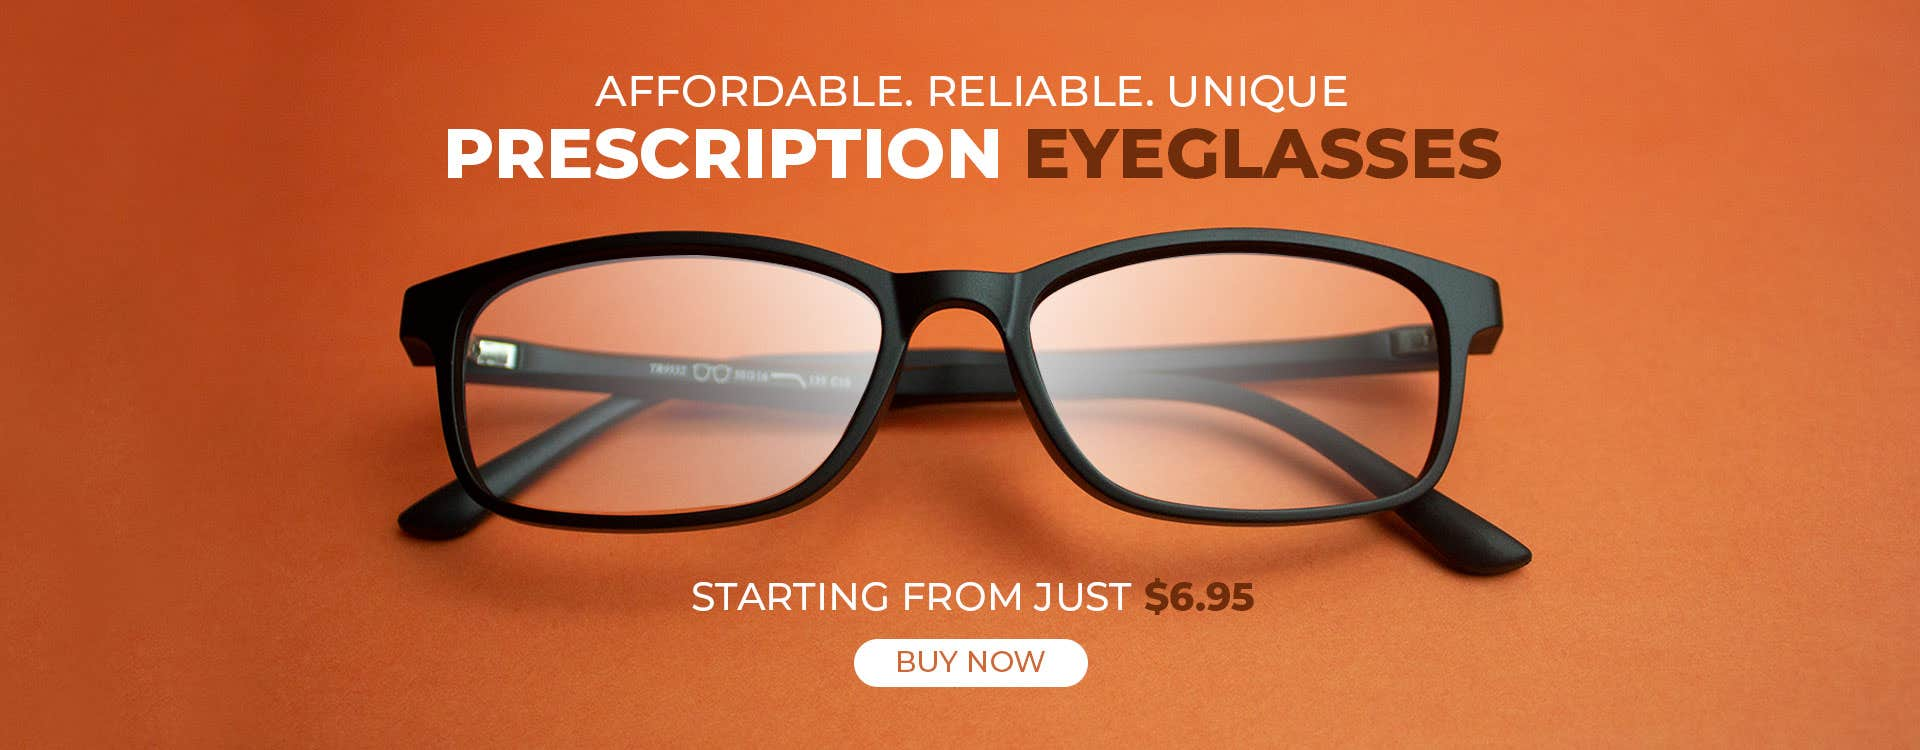 summer prescription eyeglasses